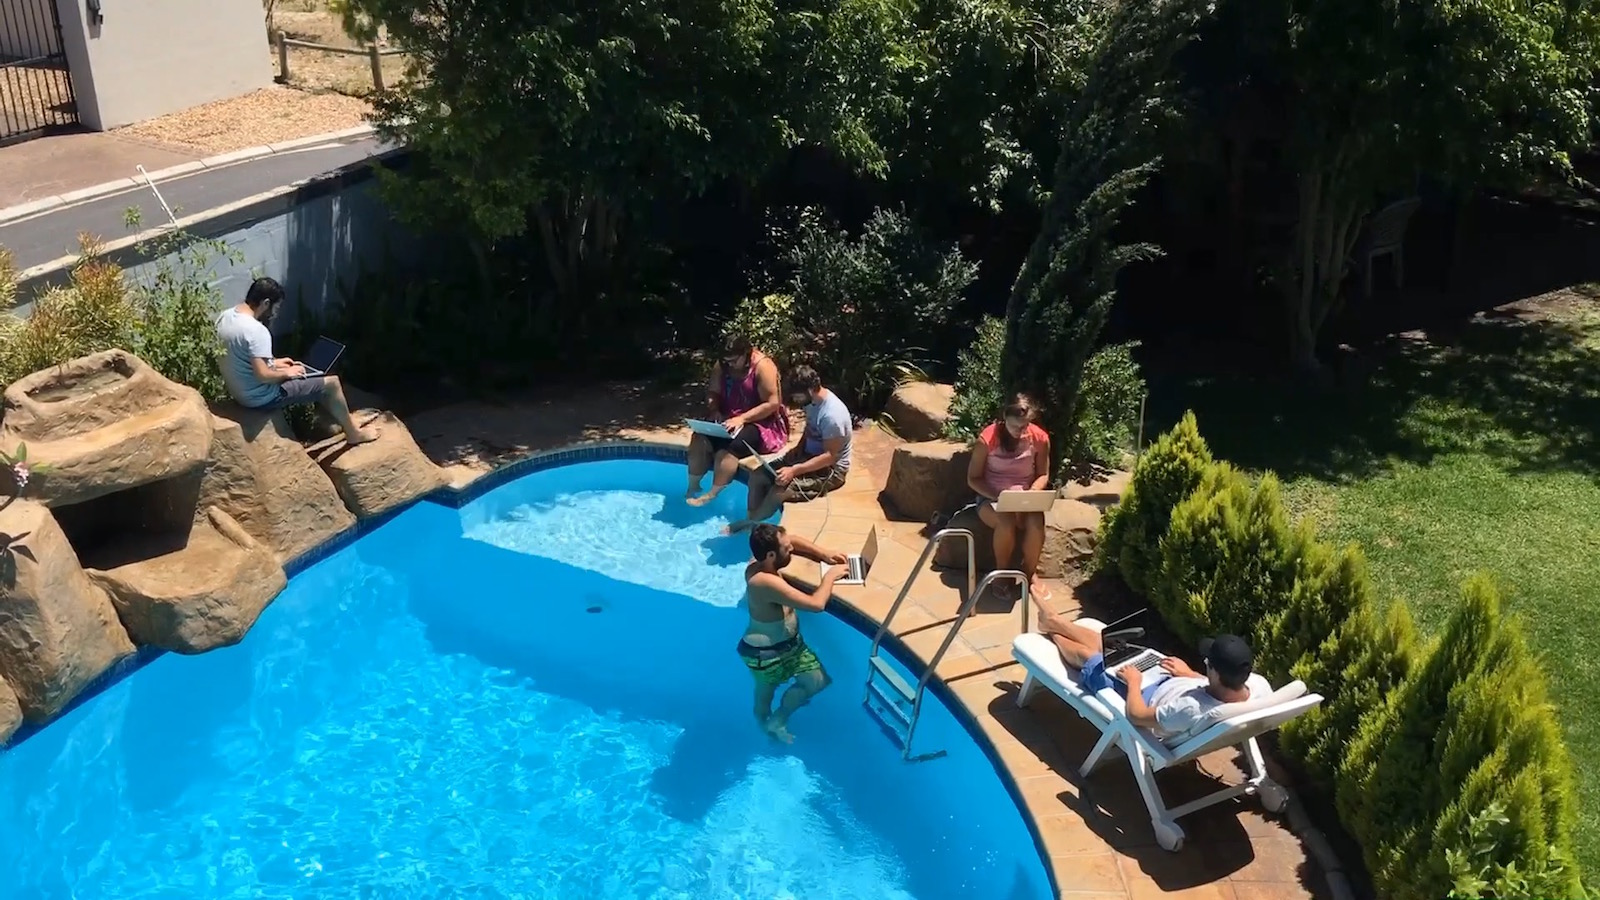 Some days it was too hot to work from inside the house. So we moved to a shady spot in the garden or working from the pool was always an option, too. So we found out.